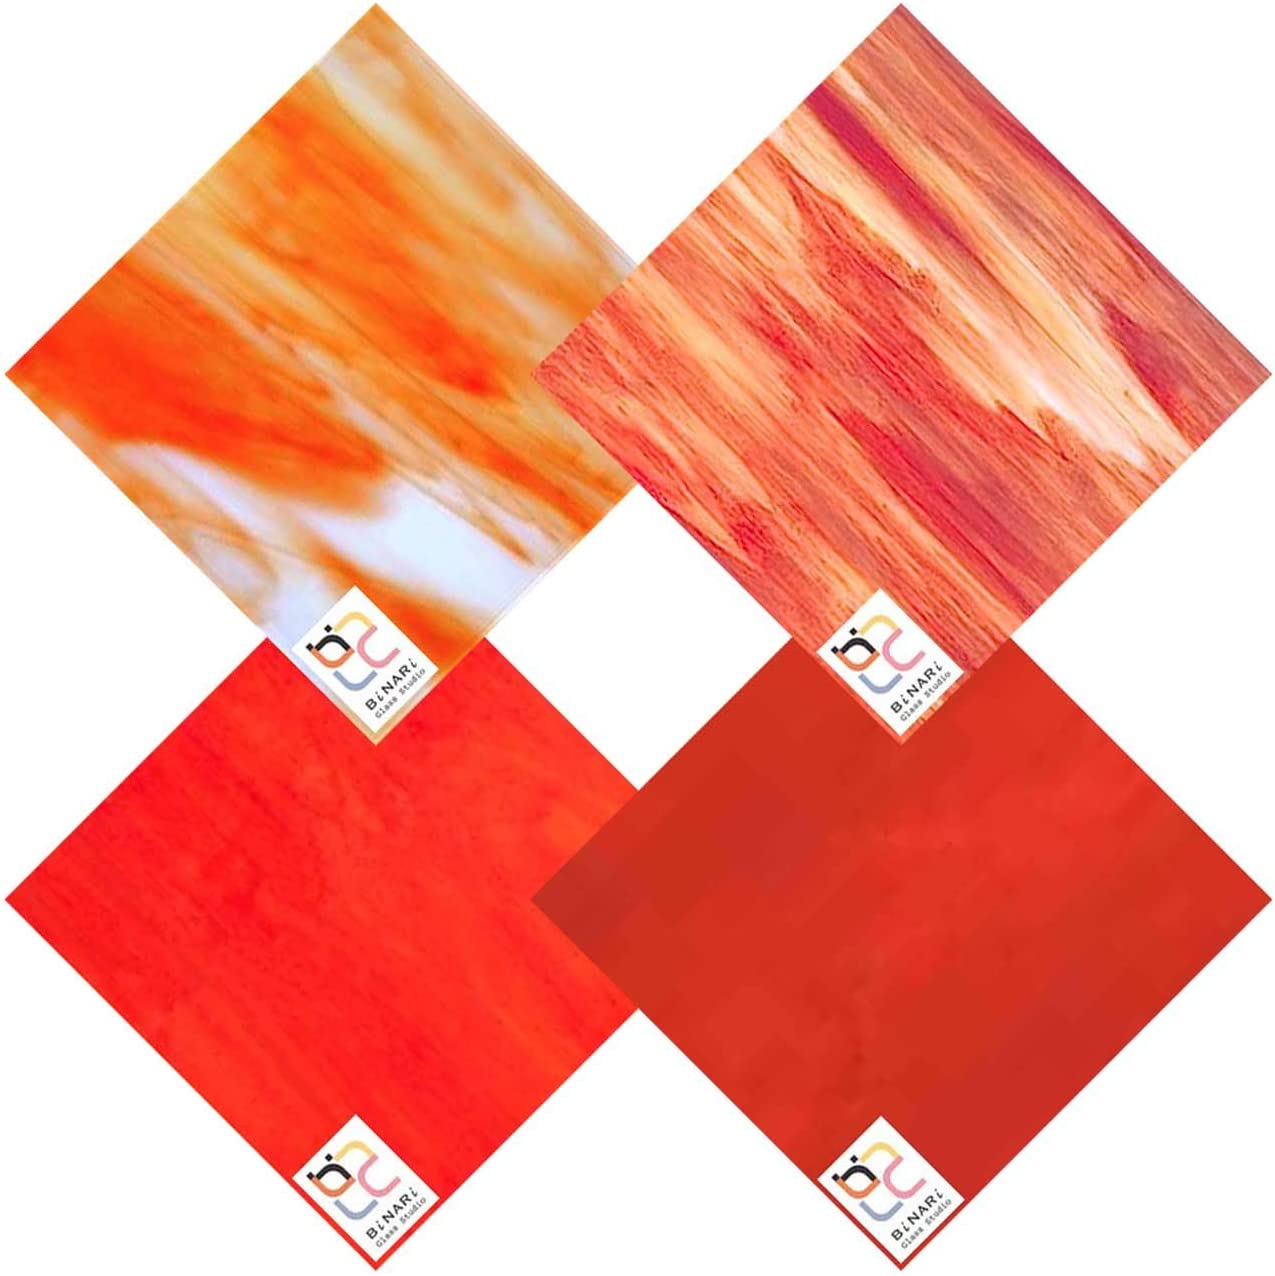 Wissmach 4 Sheet Mixed Color Max 72% OFF Variety Glass Mosa Milwaukee Mall and Pack Stained